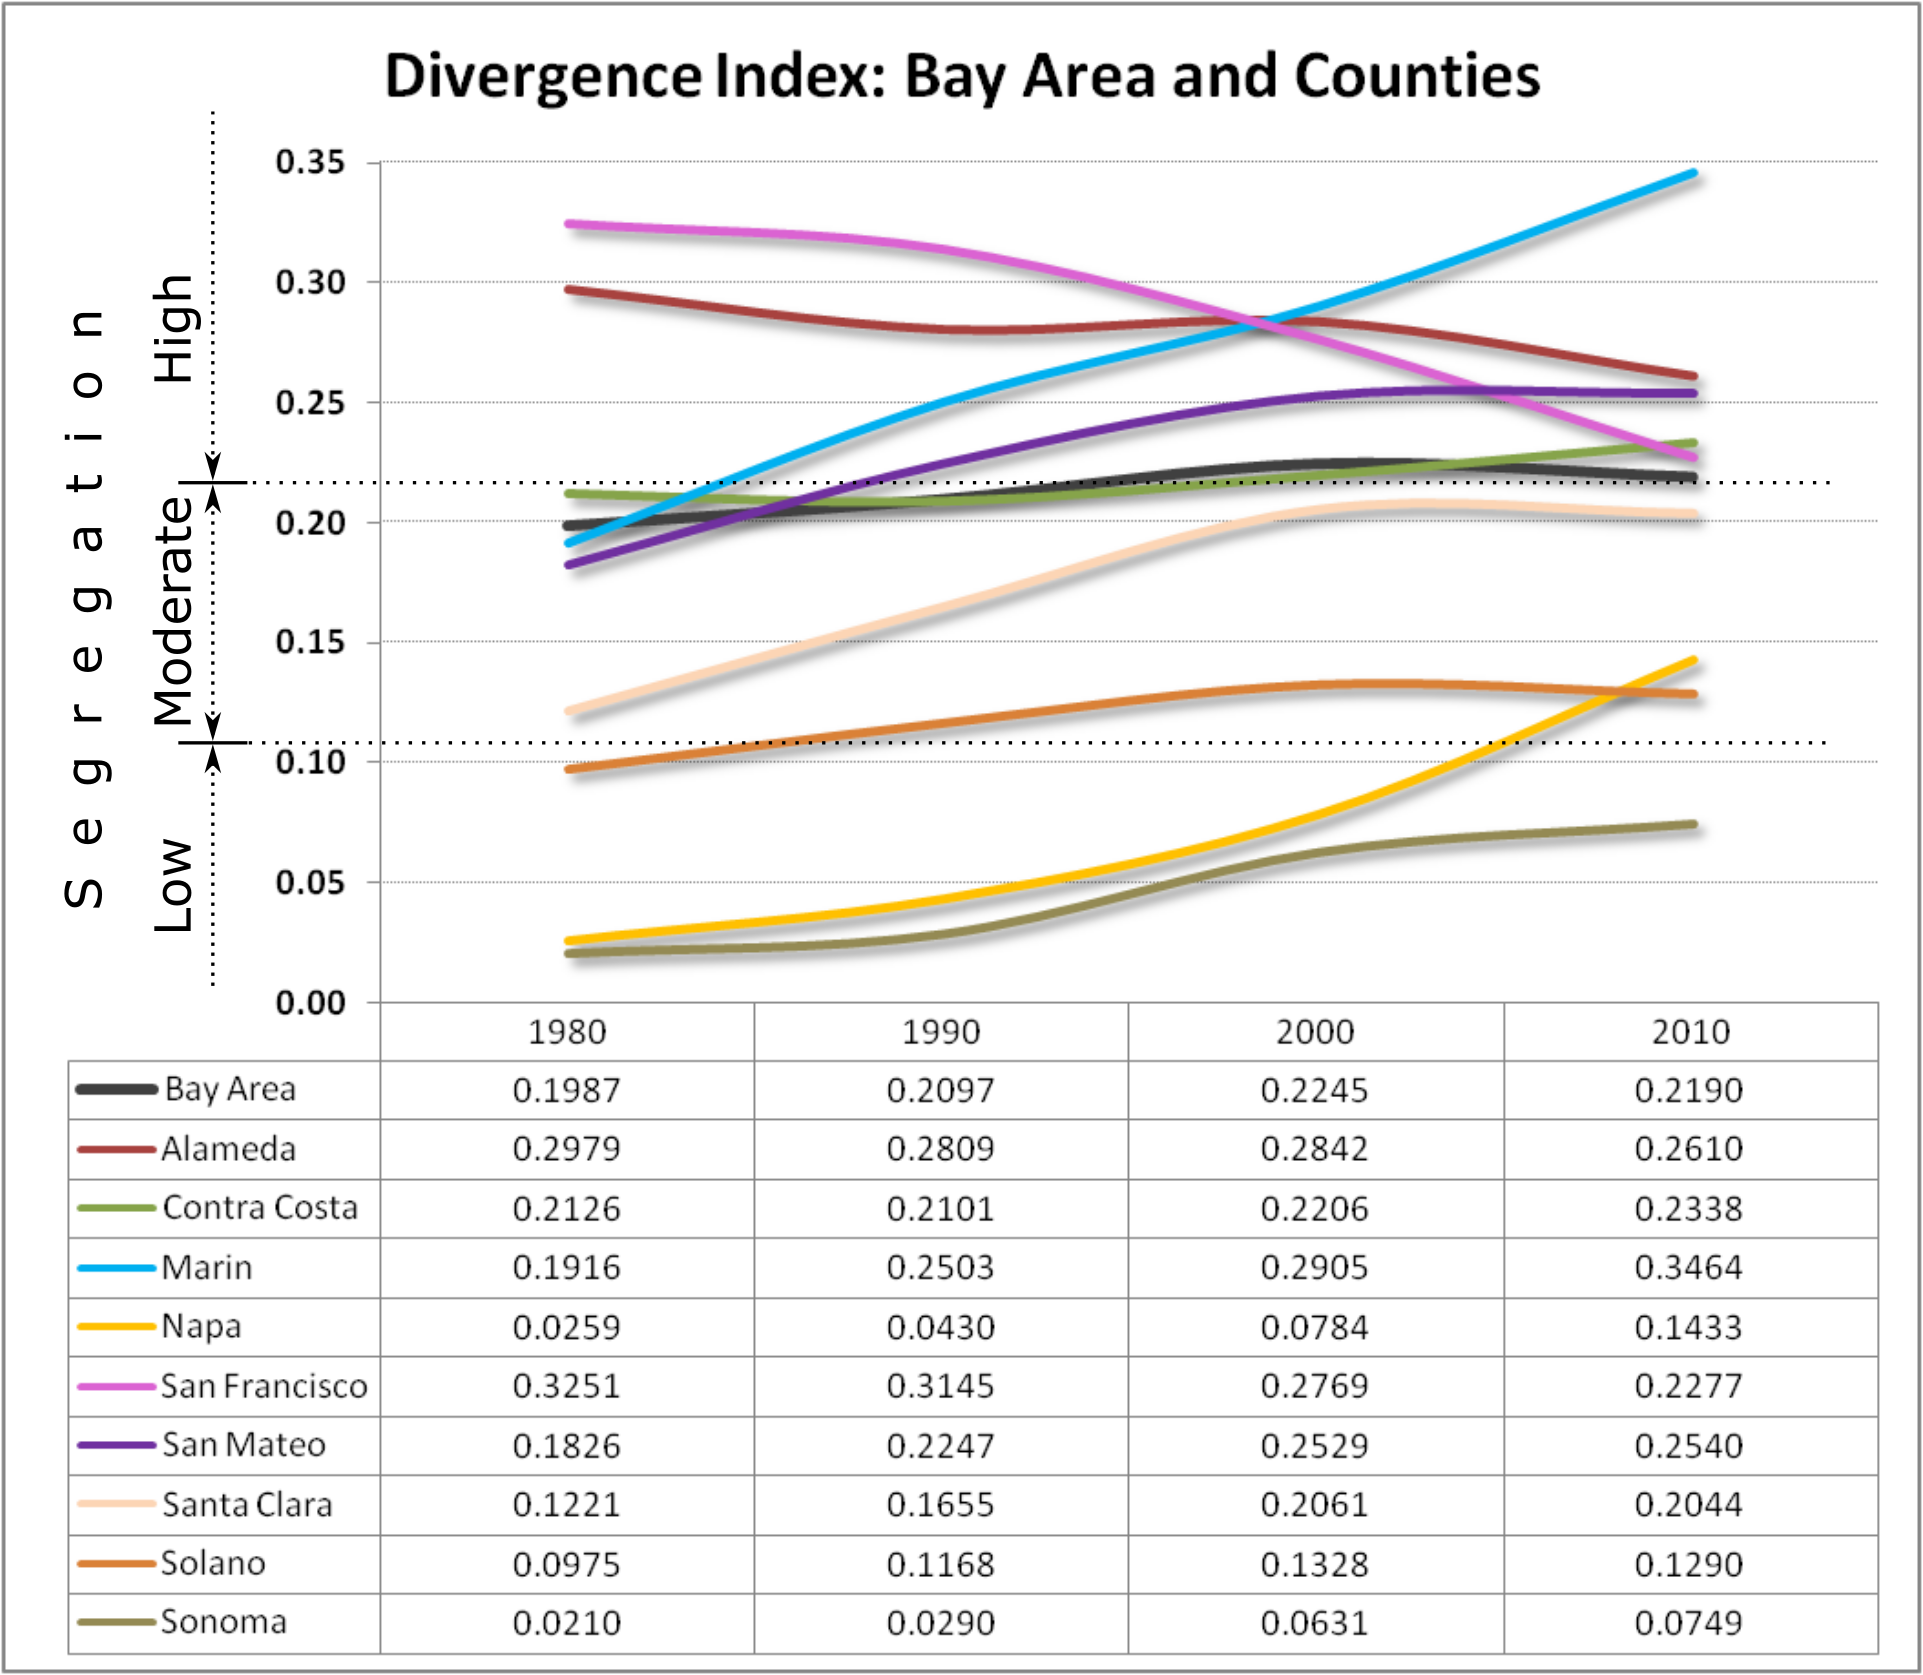 The following chart illustrates the divergence scores for each county and for the entire Bay Area, from 1980 to 2010.